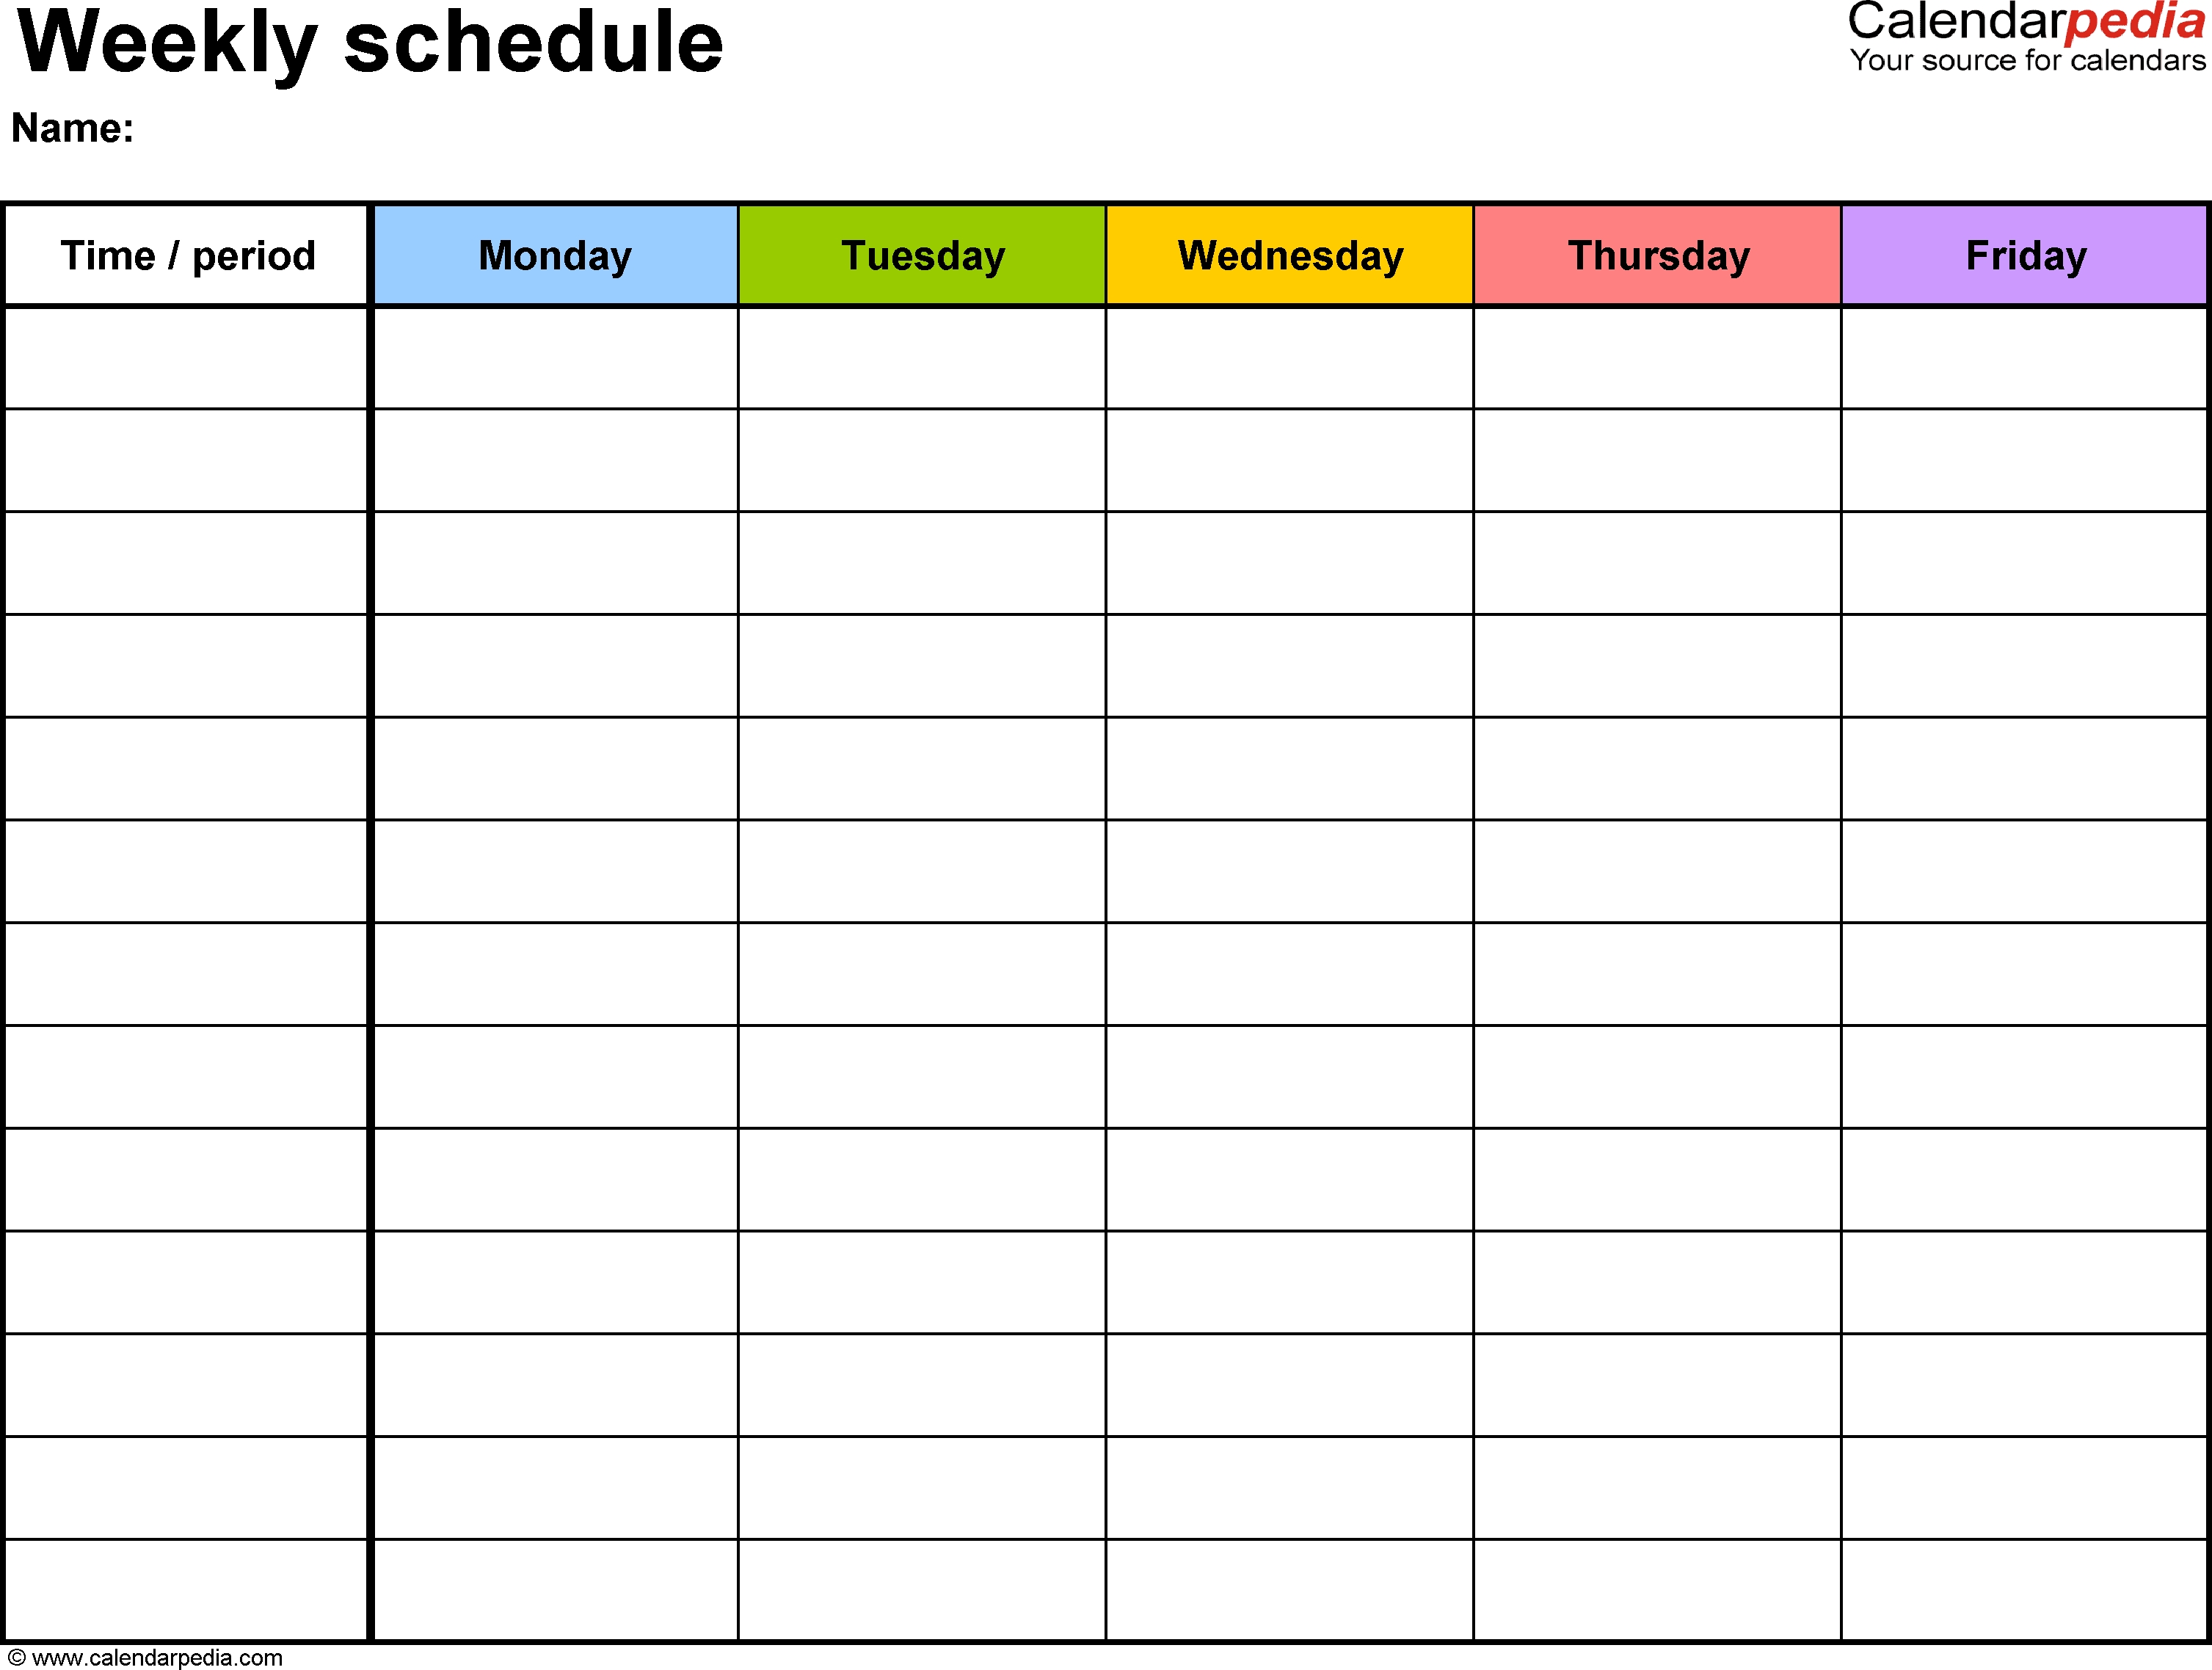 Free Weekly Schedule Templates For Excel - 18 Templates in Blank Schedule Sheet With Times